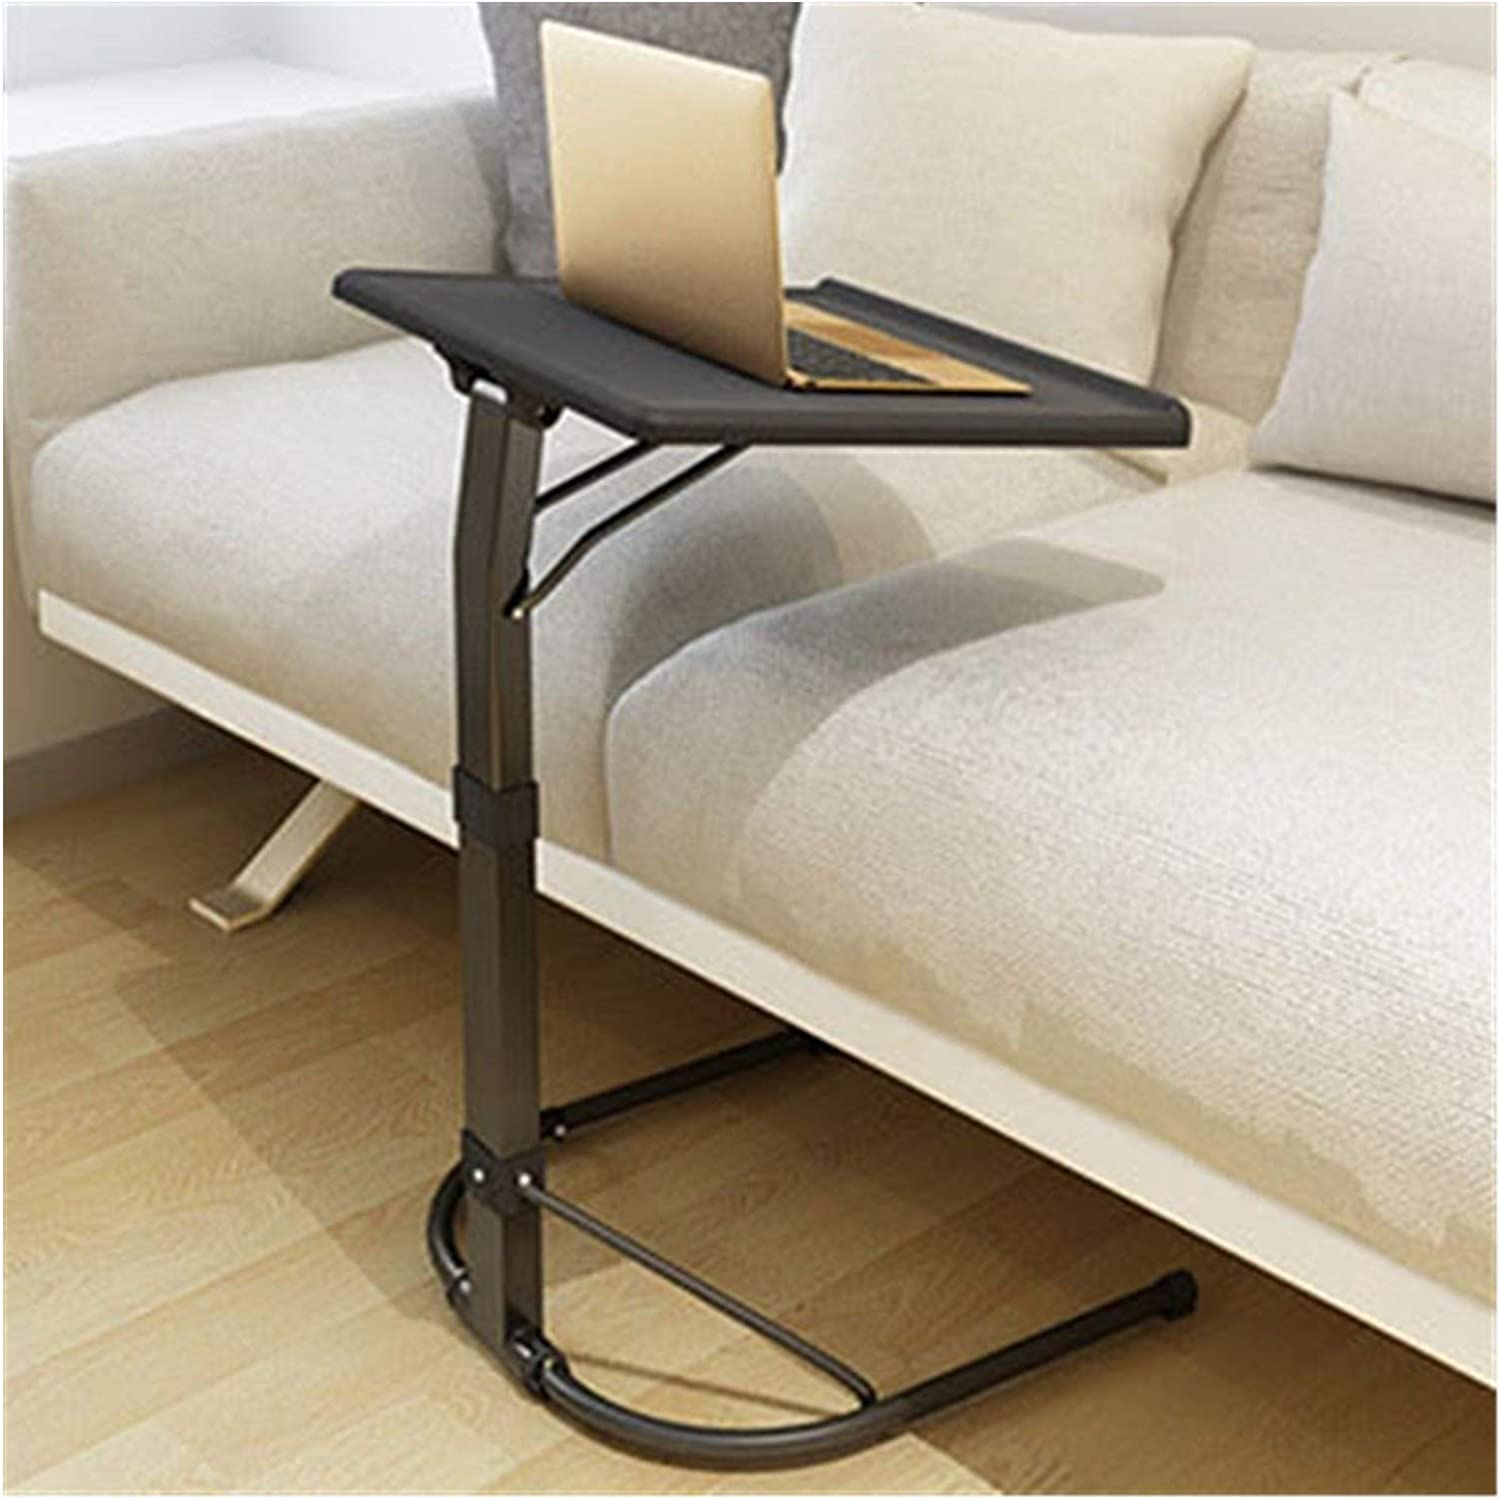 RTYU Snack Side Table Fashion Max 79% OFF Desk Cheap Notebook Bed Computer Simple